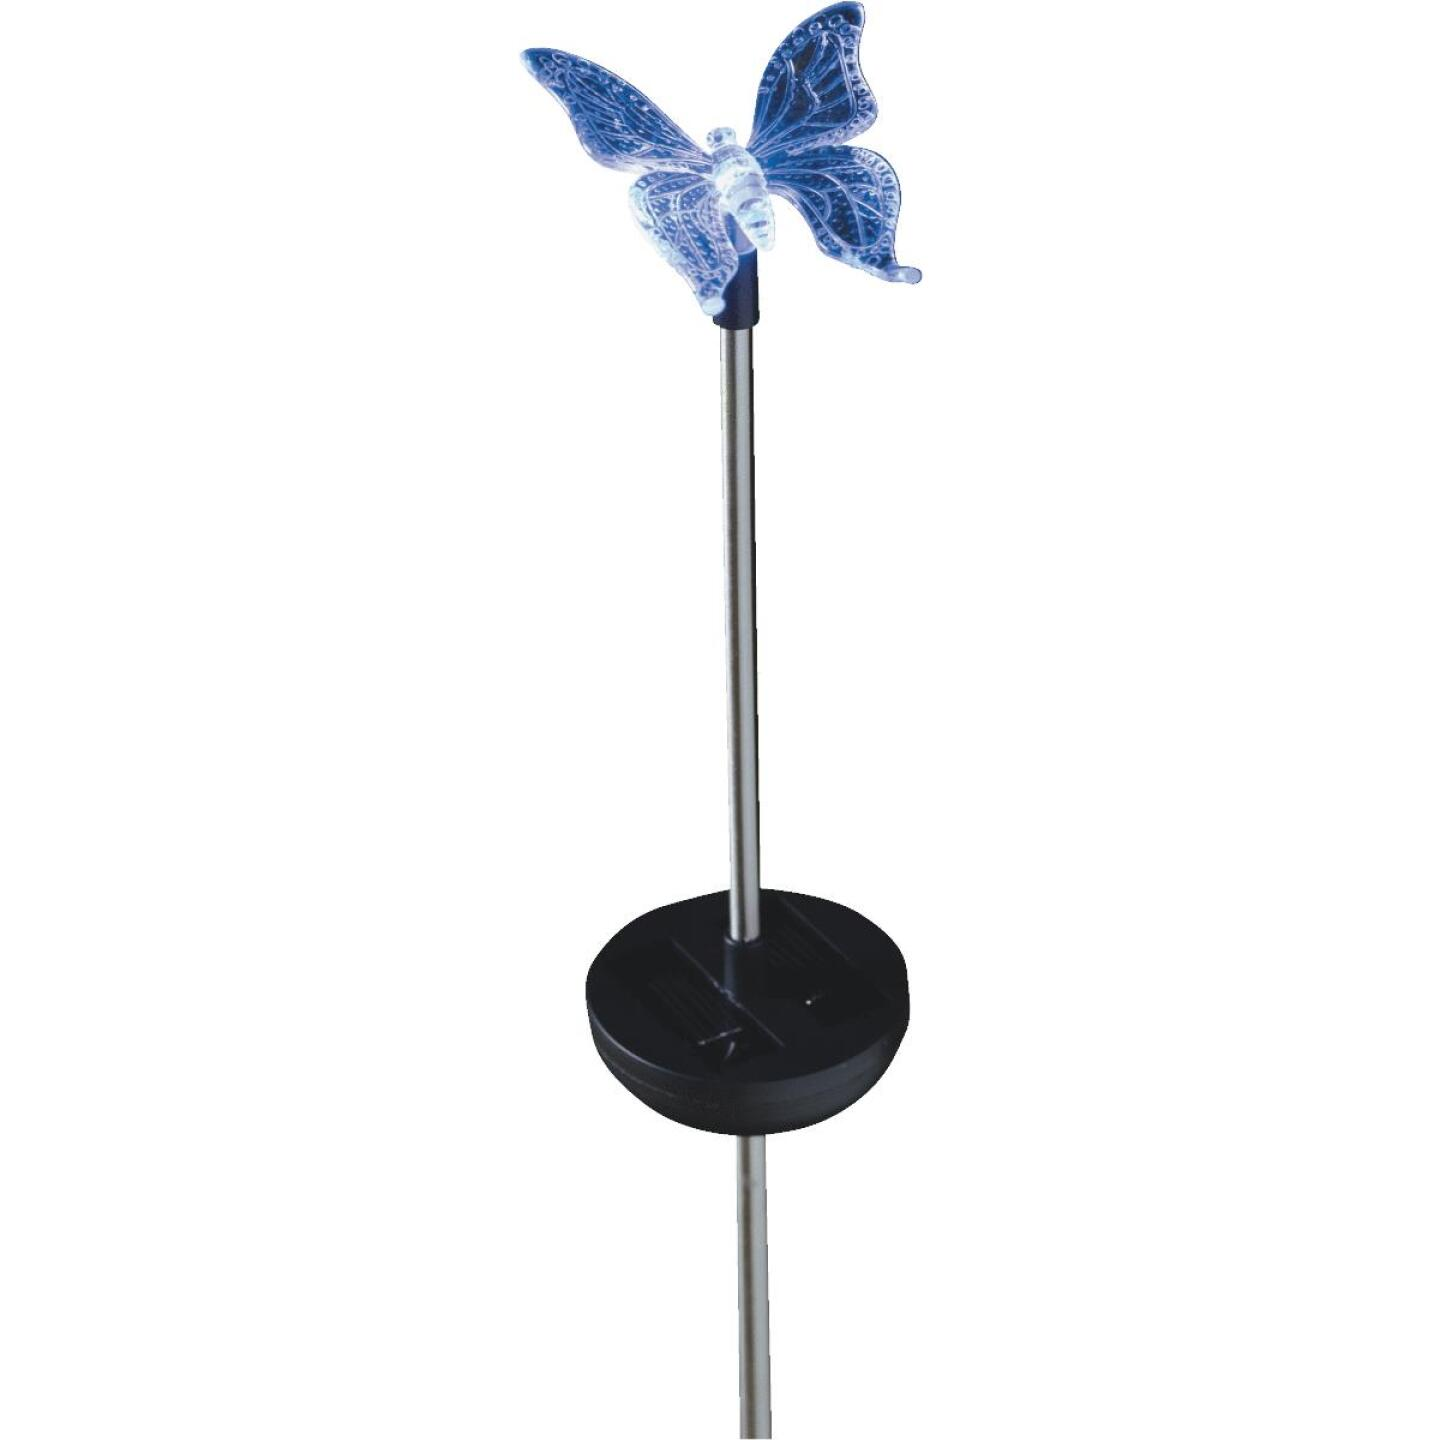 Moonrays Color Changing Plastic 32 In. H. Solar Stake Light Lawn Ornament Image 33